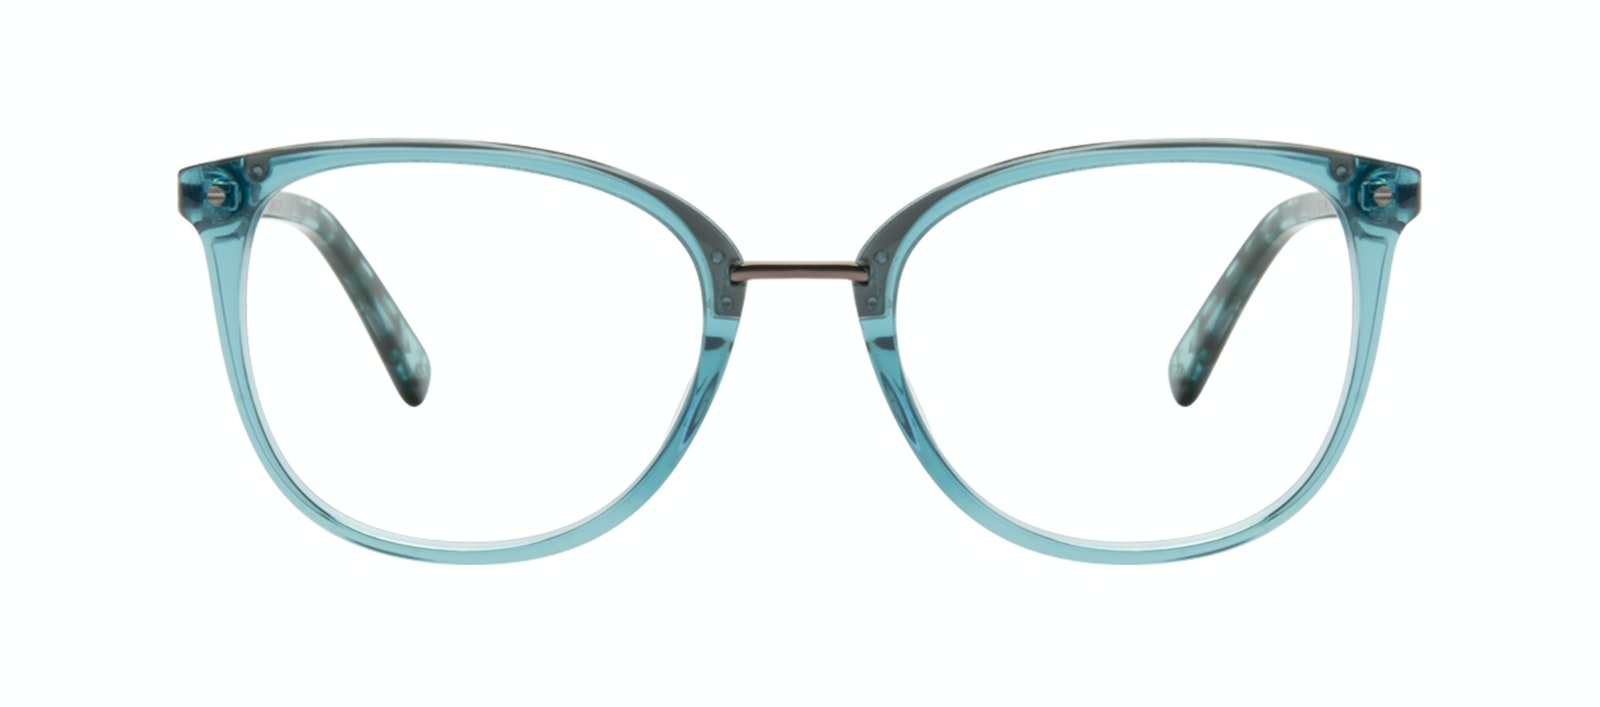 46ae96cd11b Affordable Fashion Glasses Square Round Eyeglasses Women Bella Teal Front